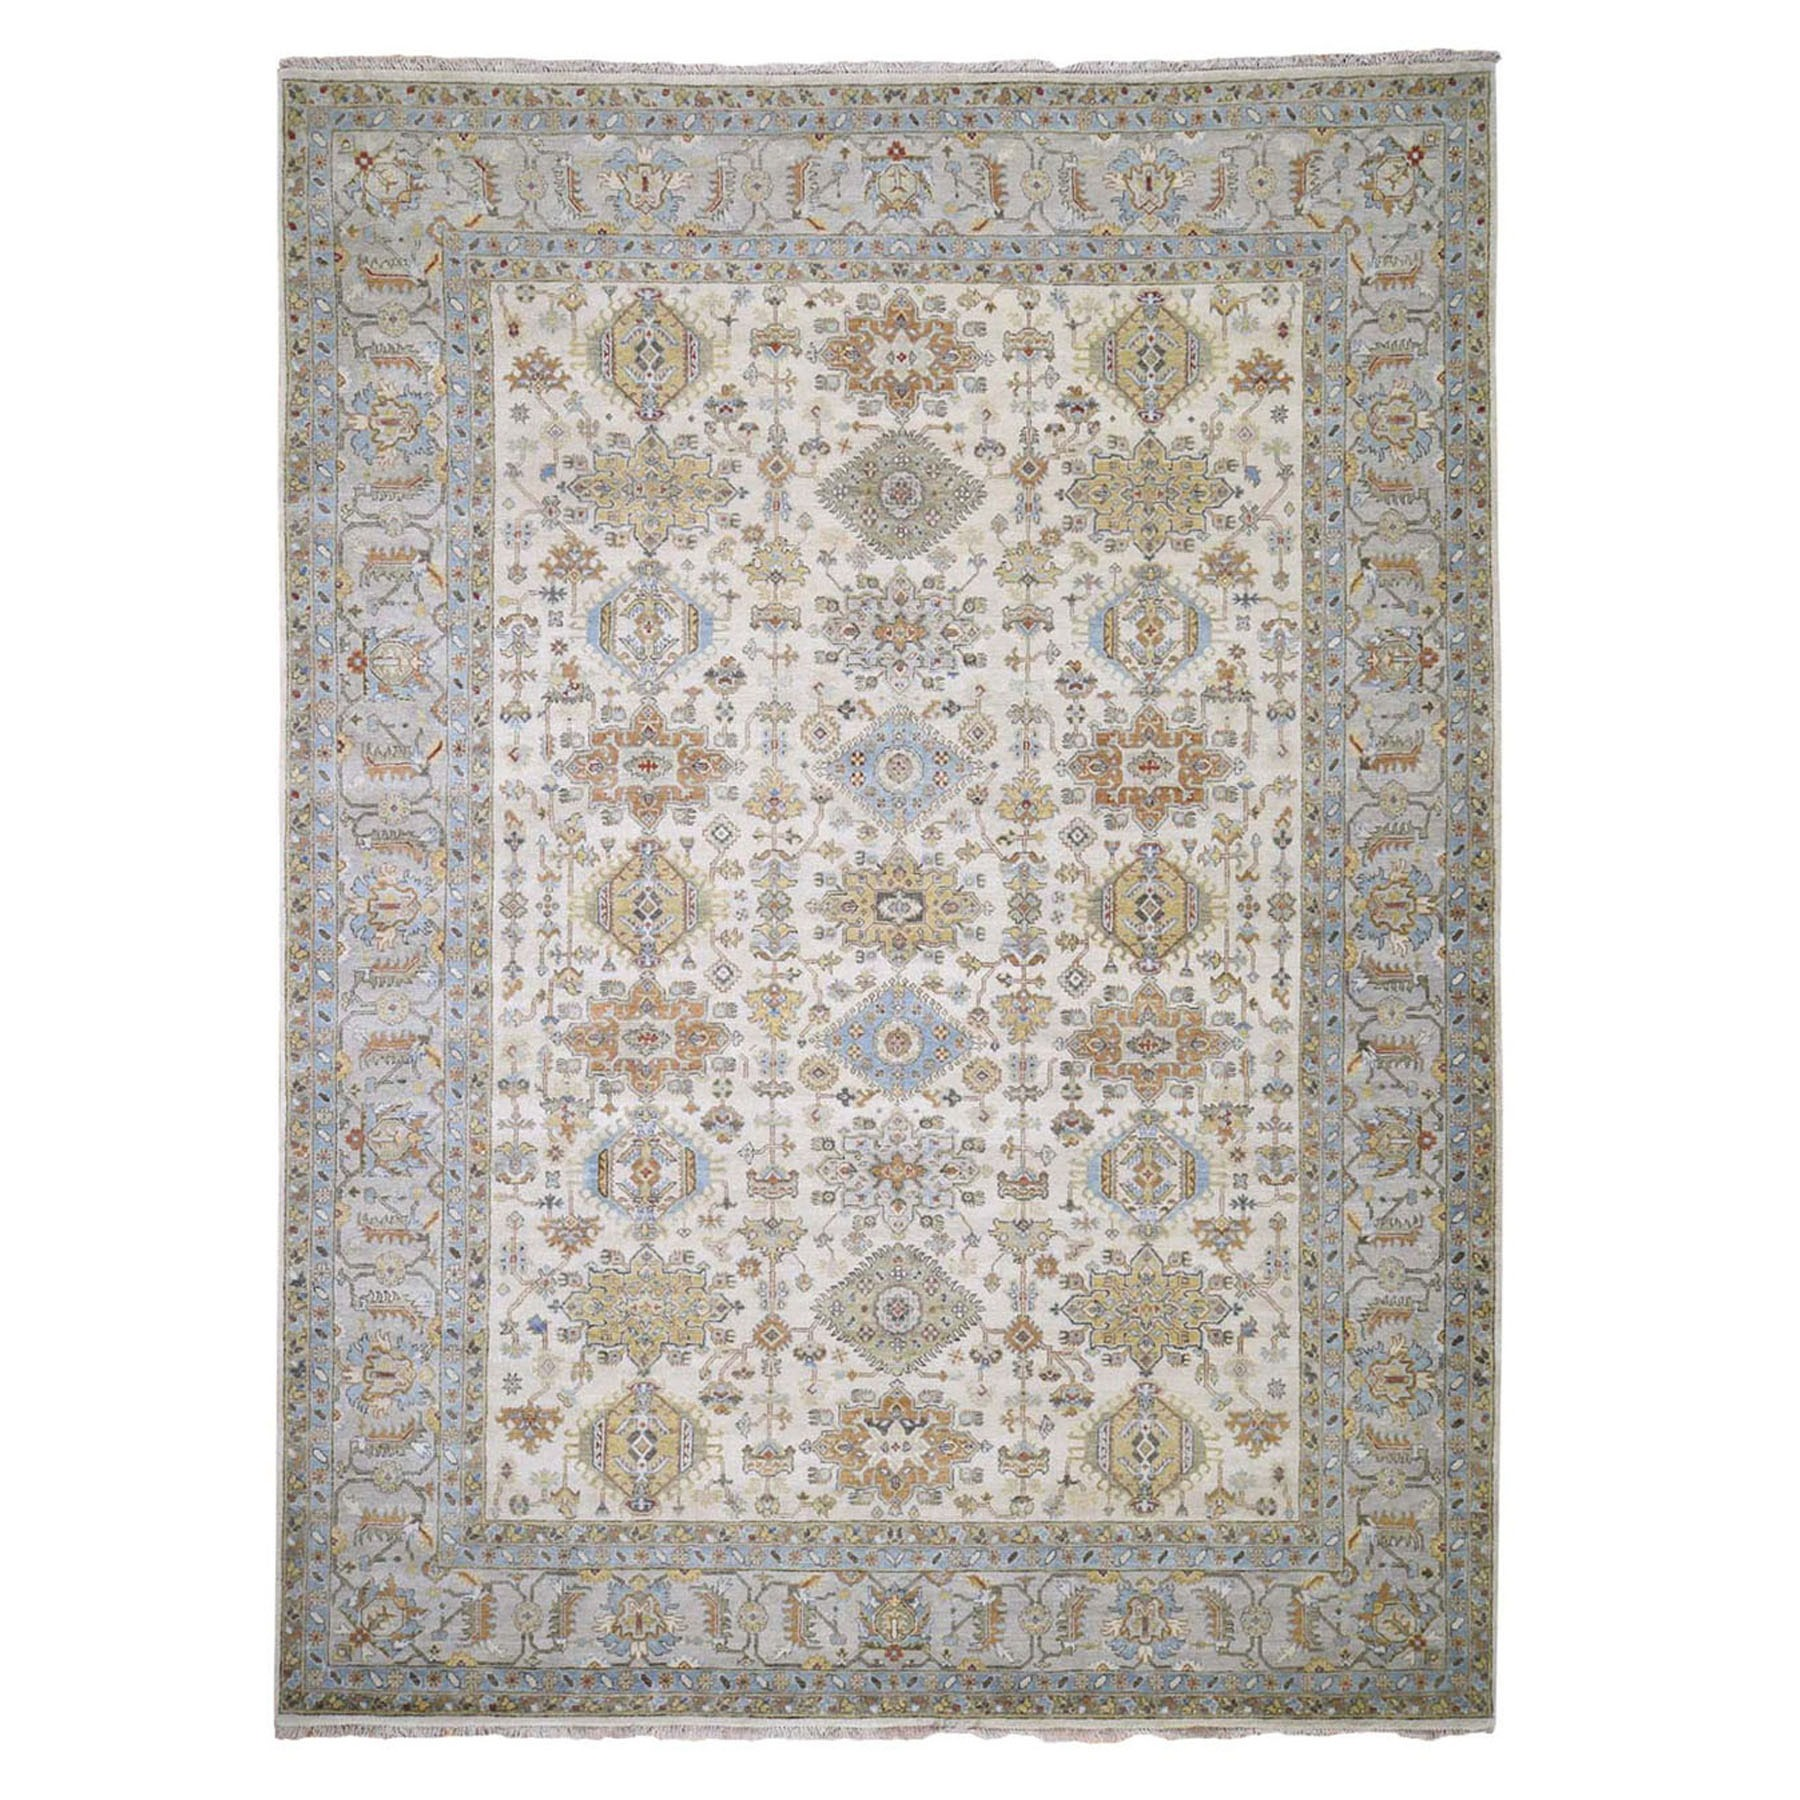 9'x12' Ivory Karajeh Design Pure Wool Hand Knotted Oriental Rug